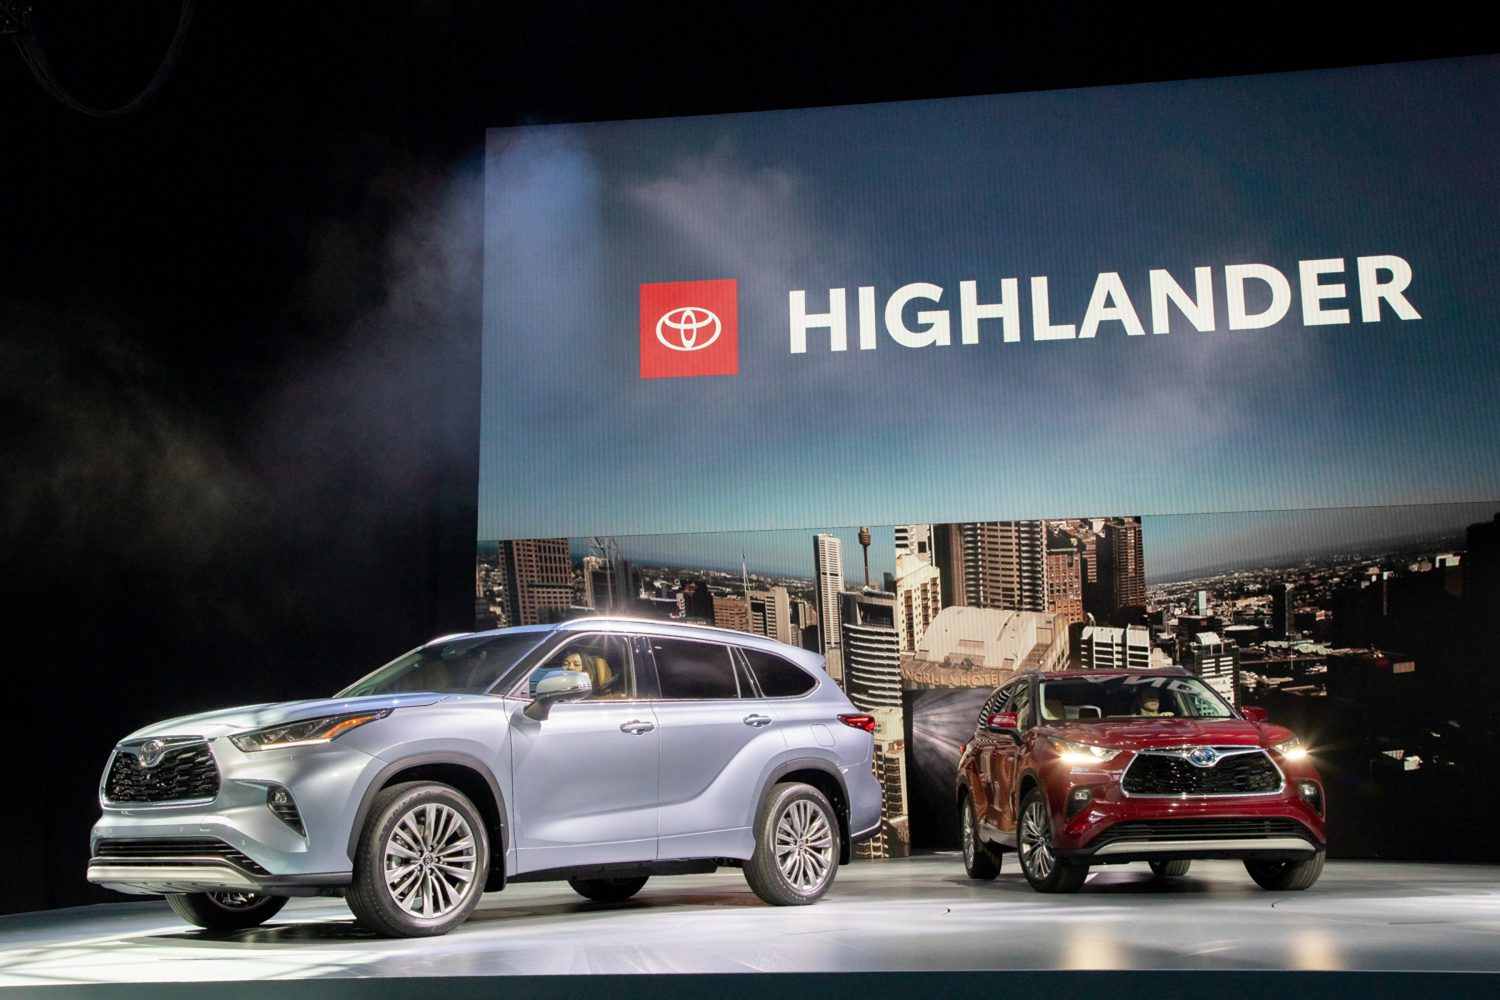 New York Auto Show 2020.2020 Highlander World Debut Drives Toyota Lineup At The New